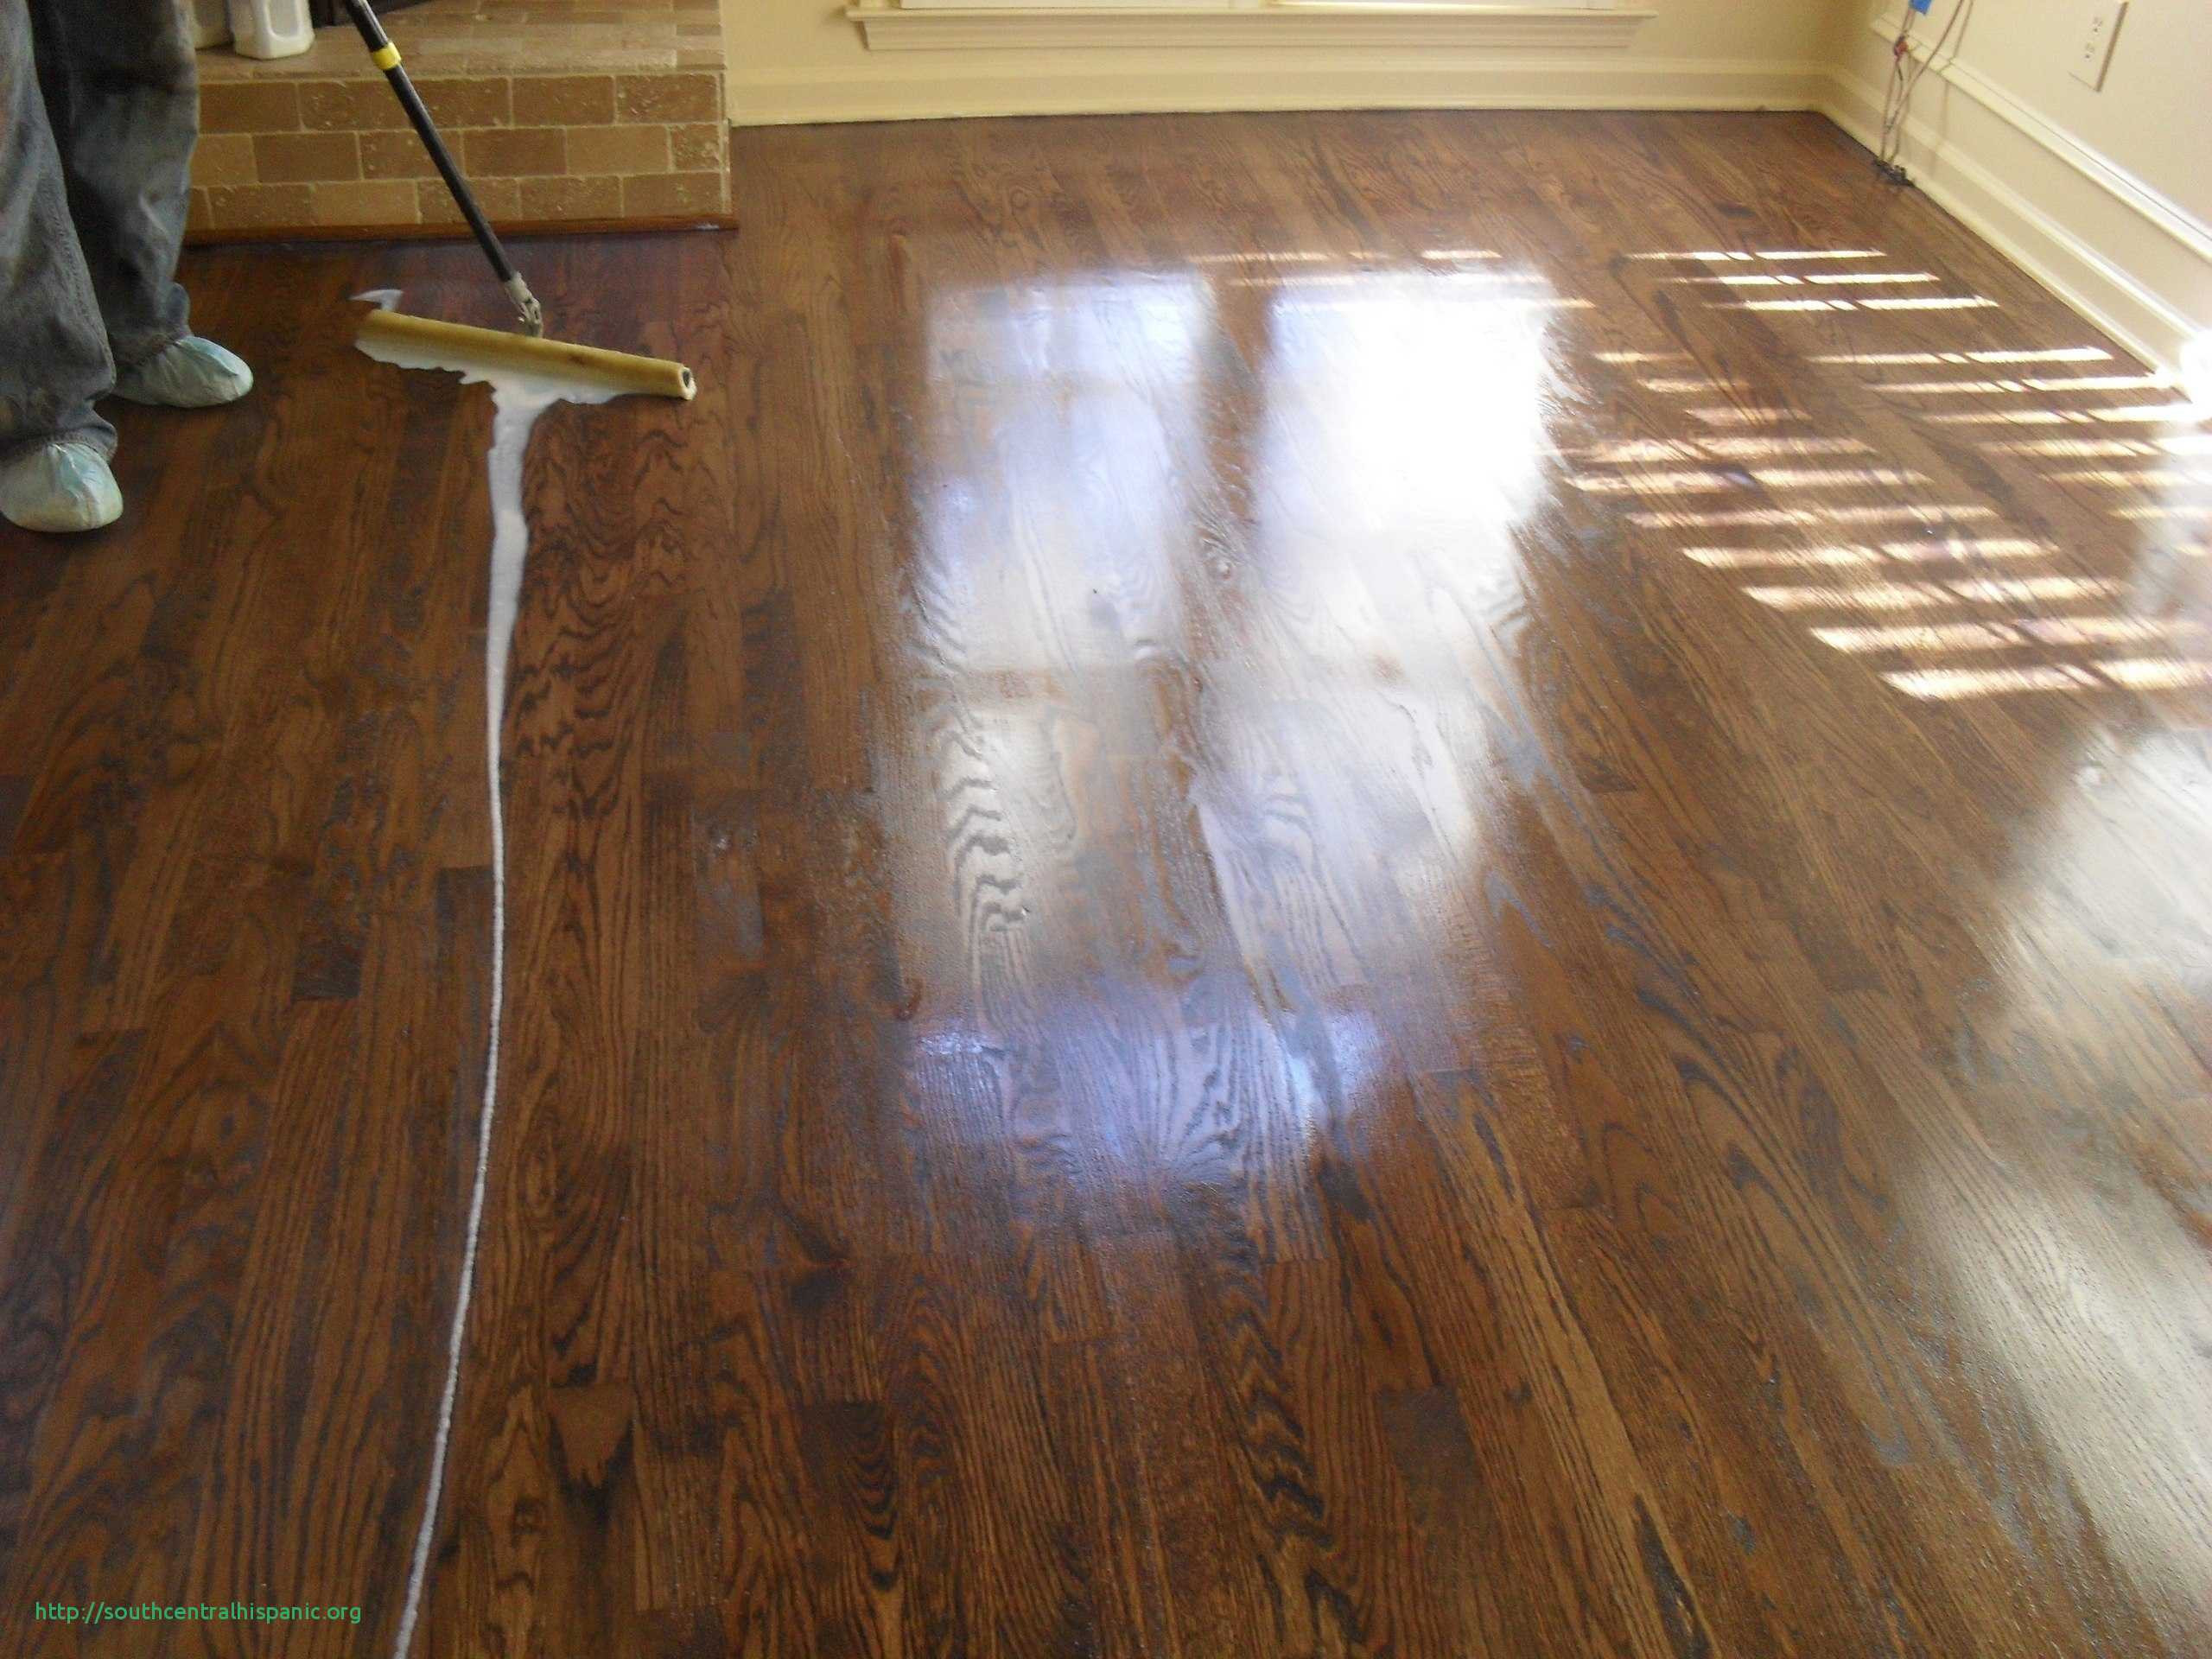 hardwood floor refinishing cherry hill nj of best of refinishing hardwood floors no sanding home interior design with ideas blog best of refinishing hardwood floors no sanding